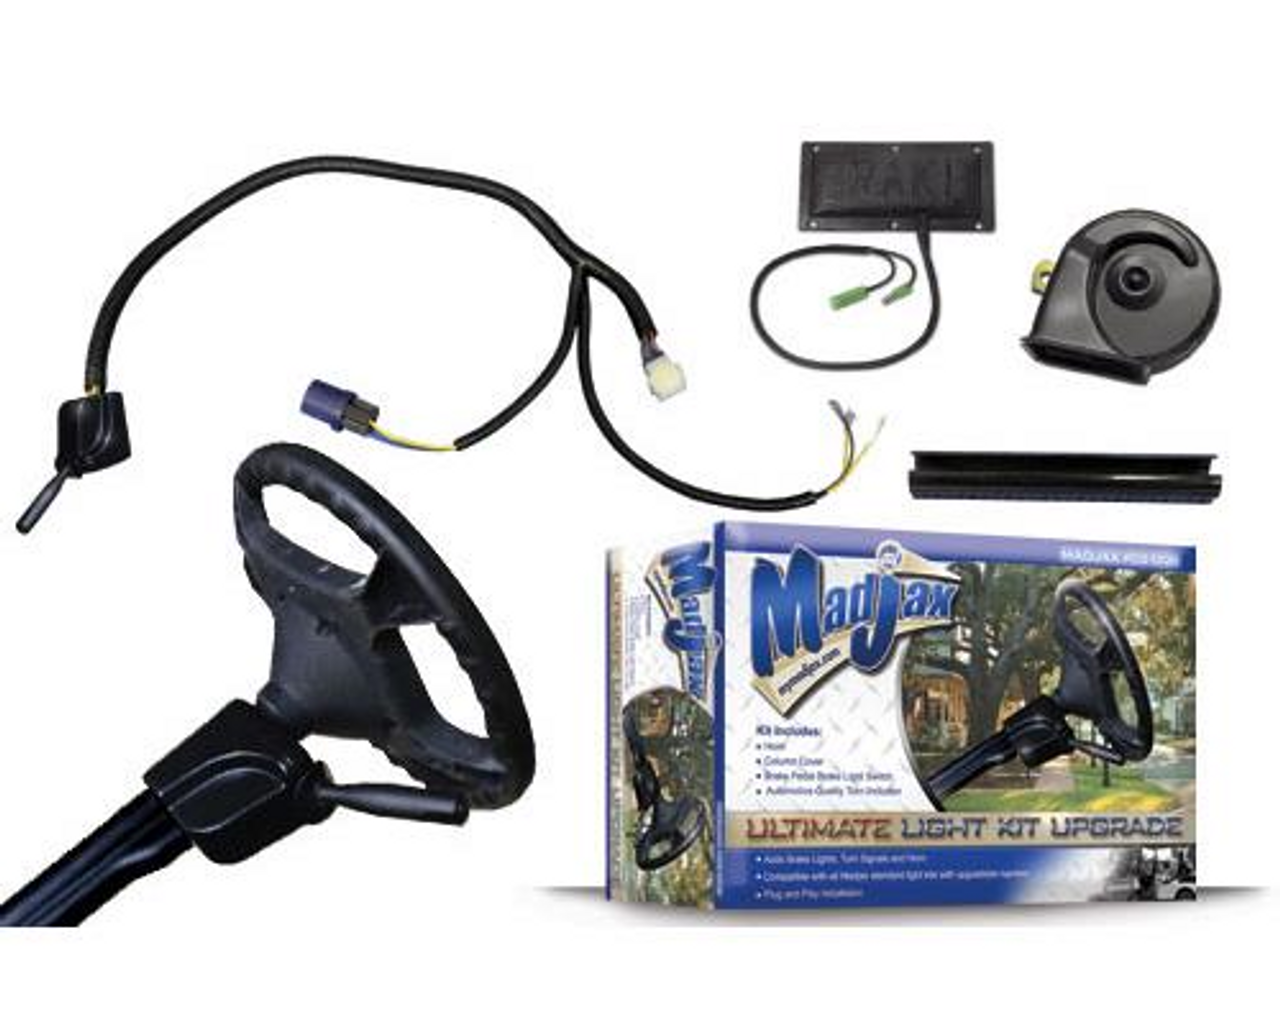 Madjax Ultimate Upgrade Kit (Includes Turn Signal Switch, Brake Pad, & Horn)